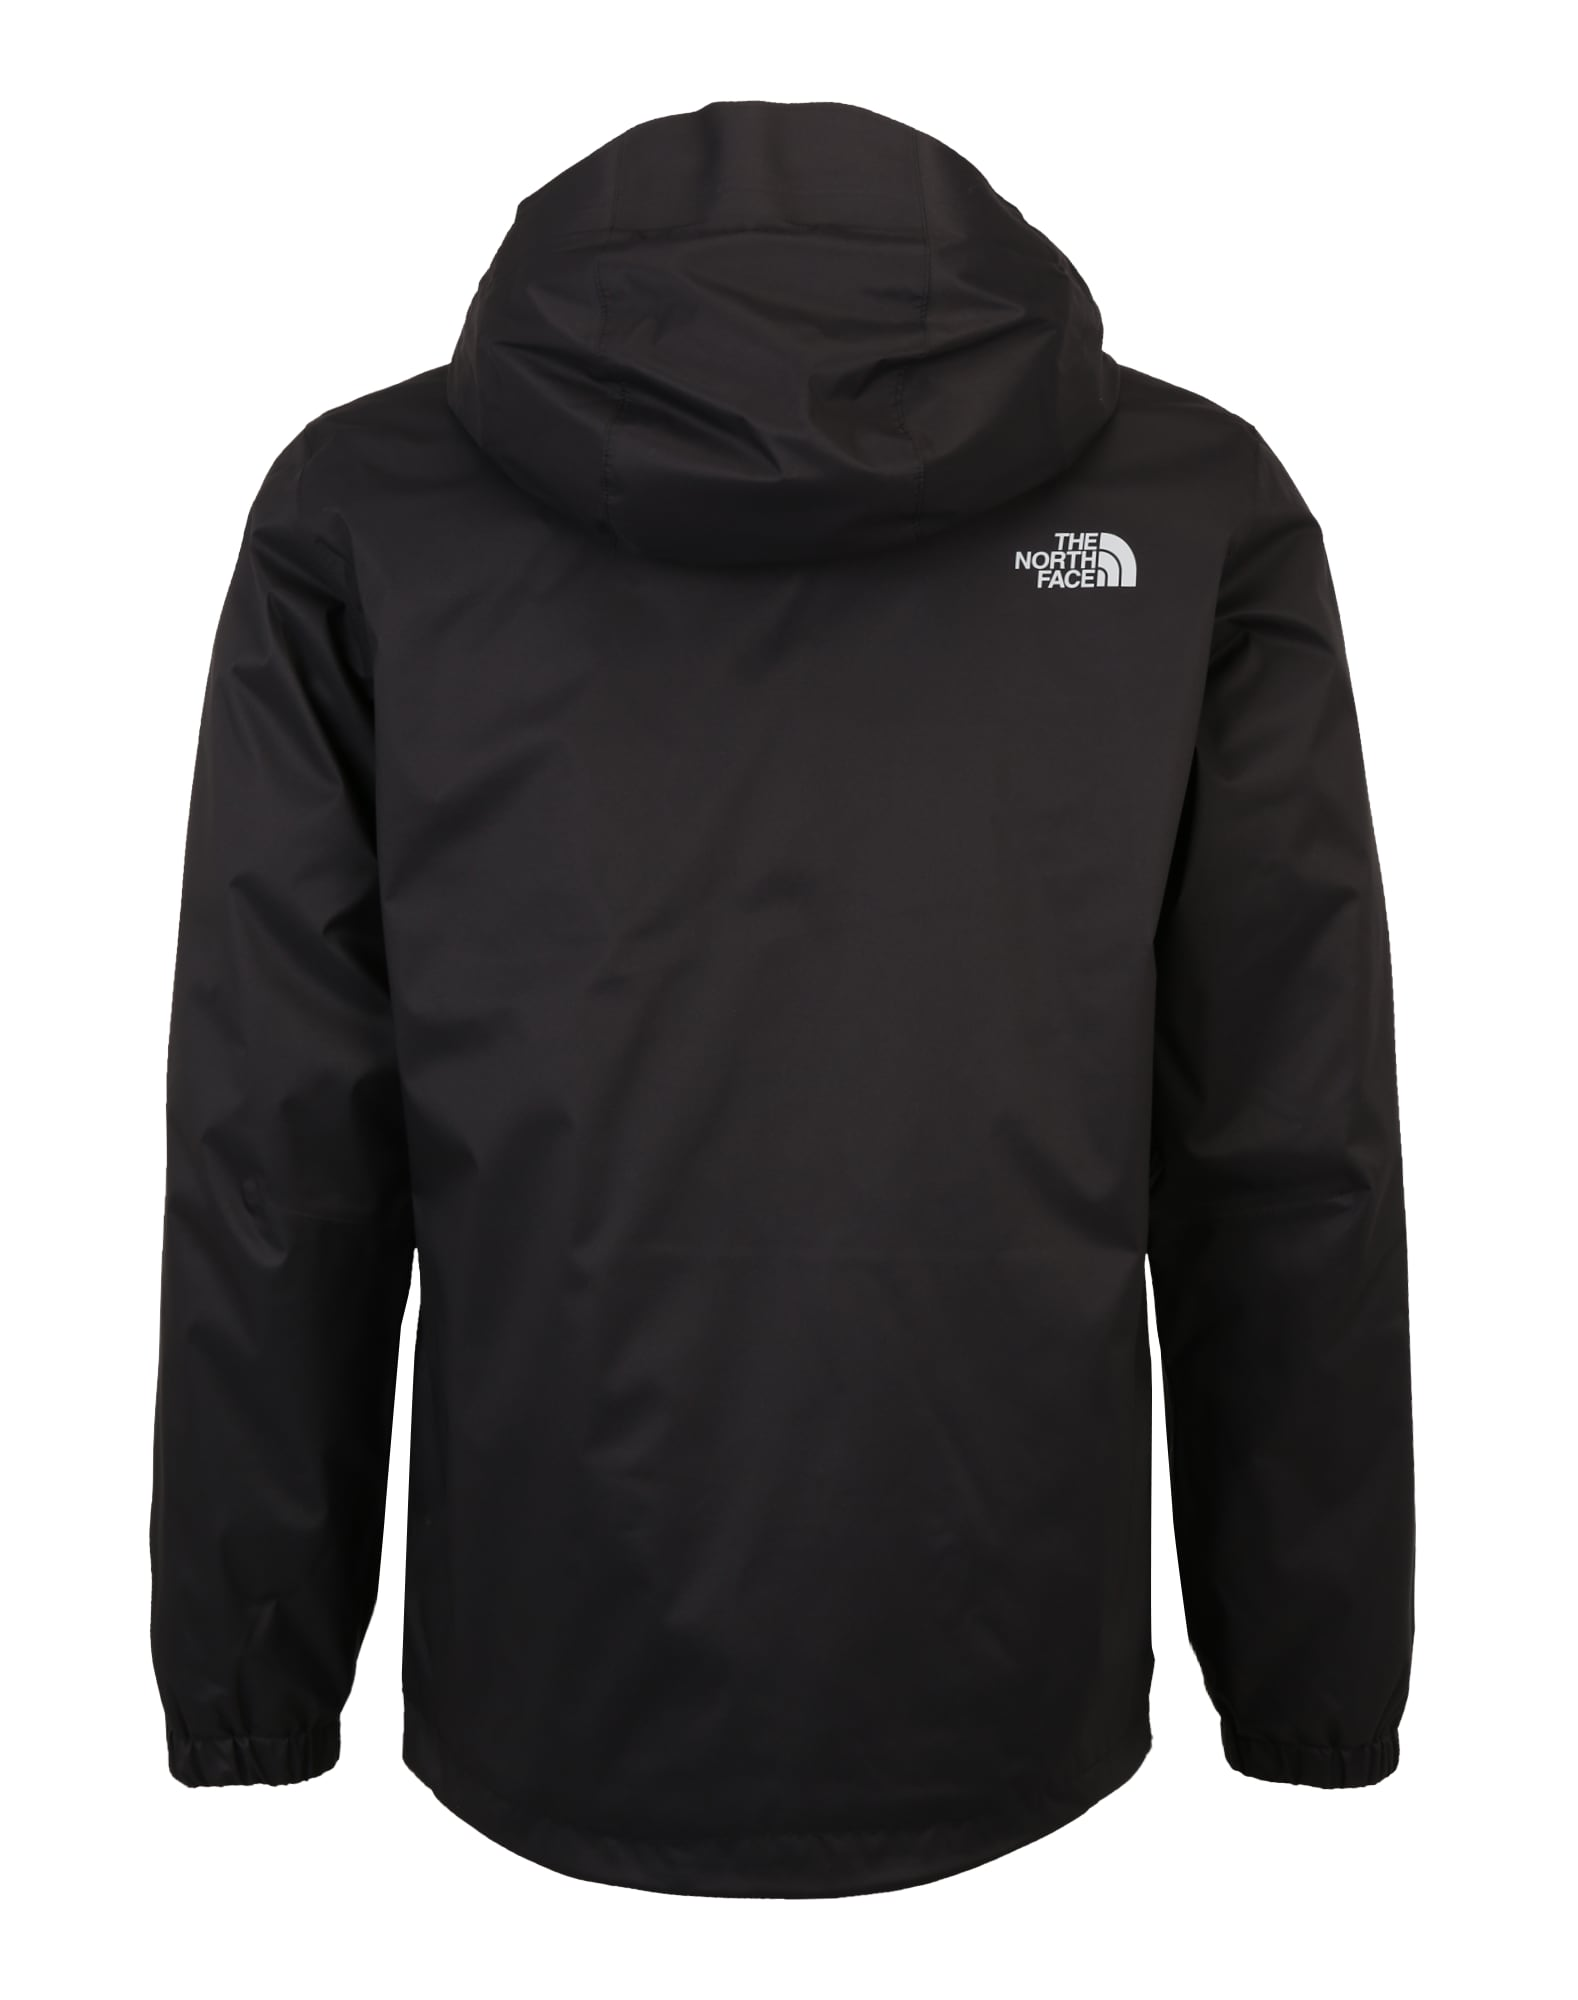 THE NORTH FACE, Heren Outdoorjas 'Quest', zwart